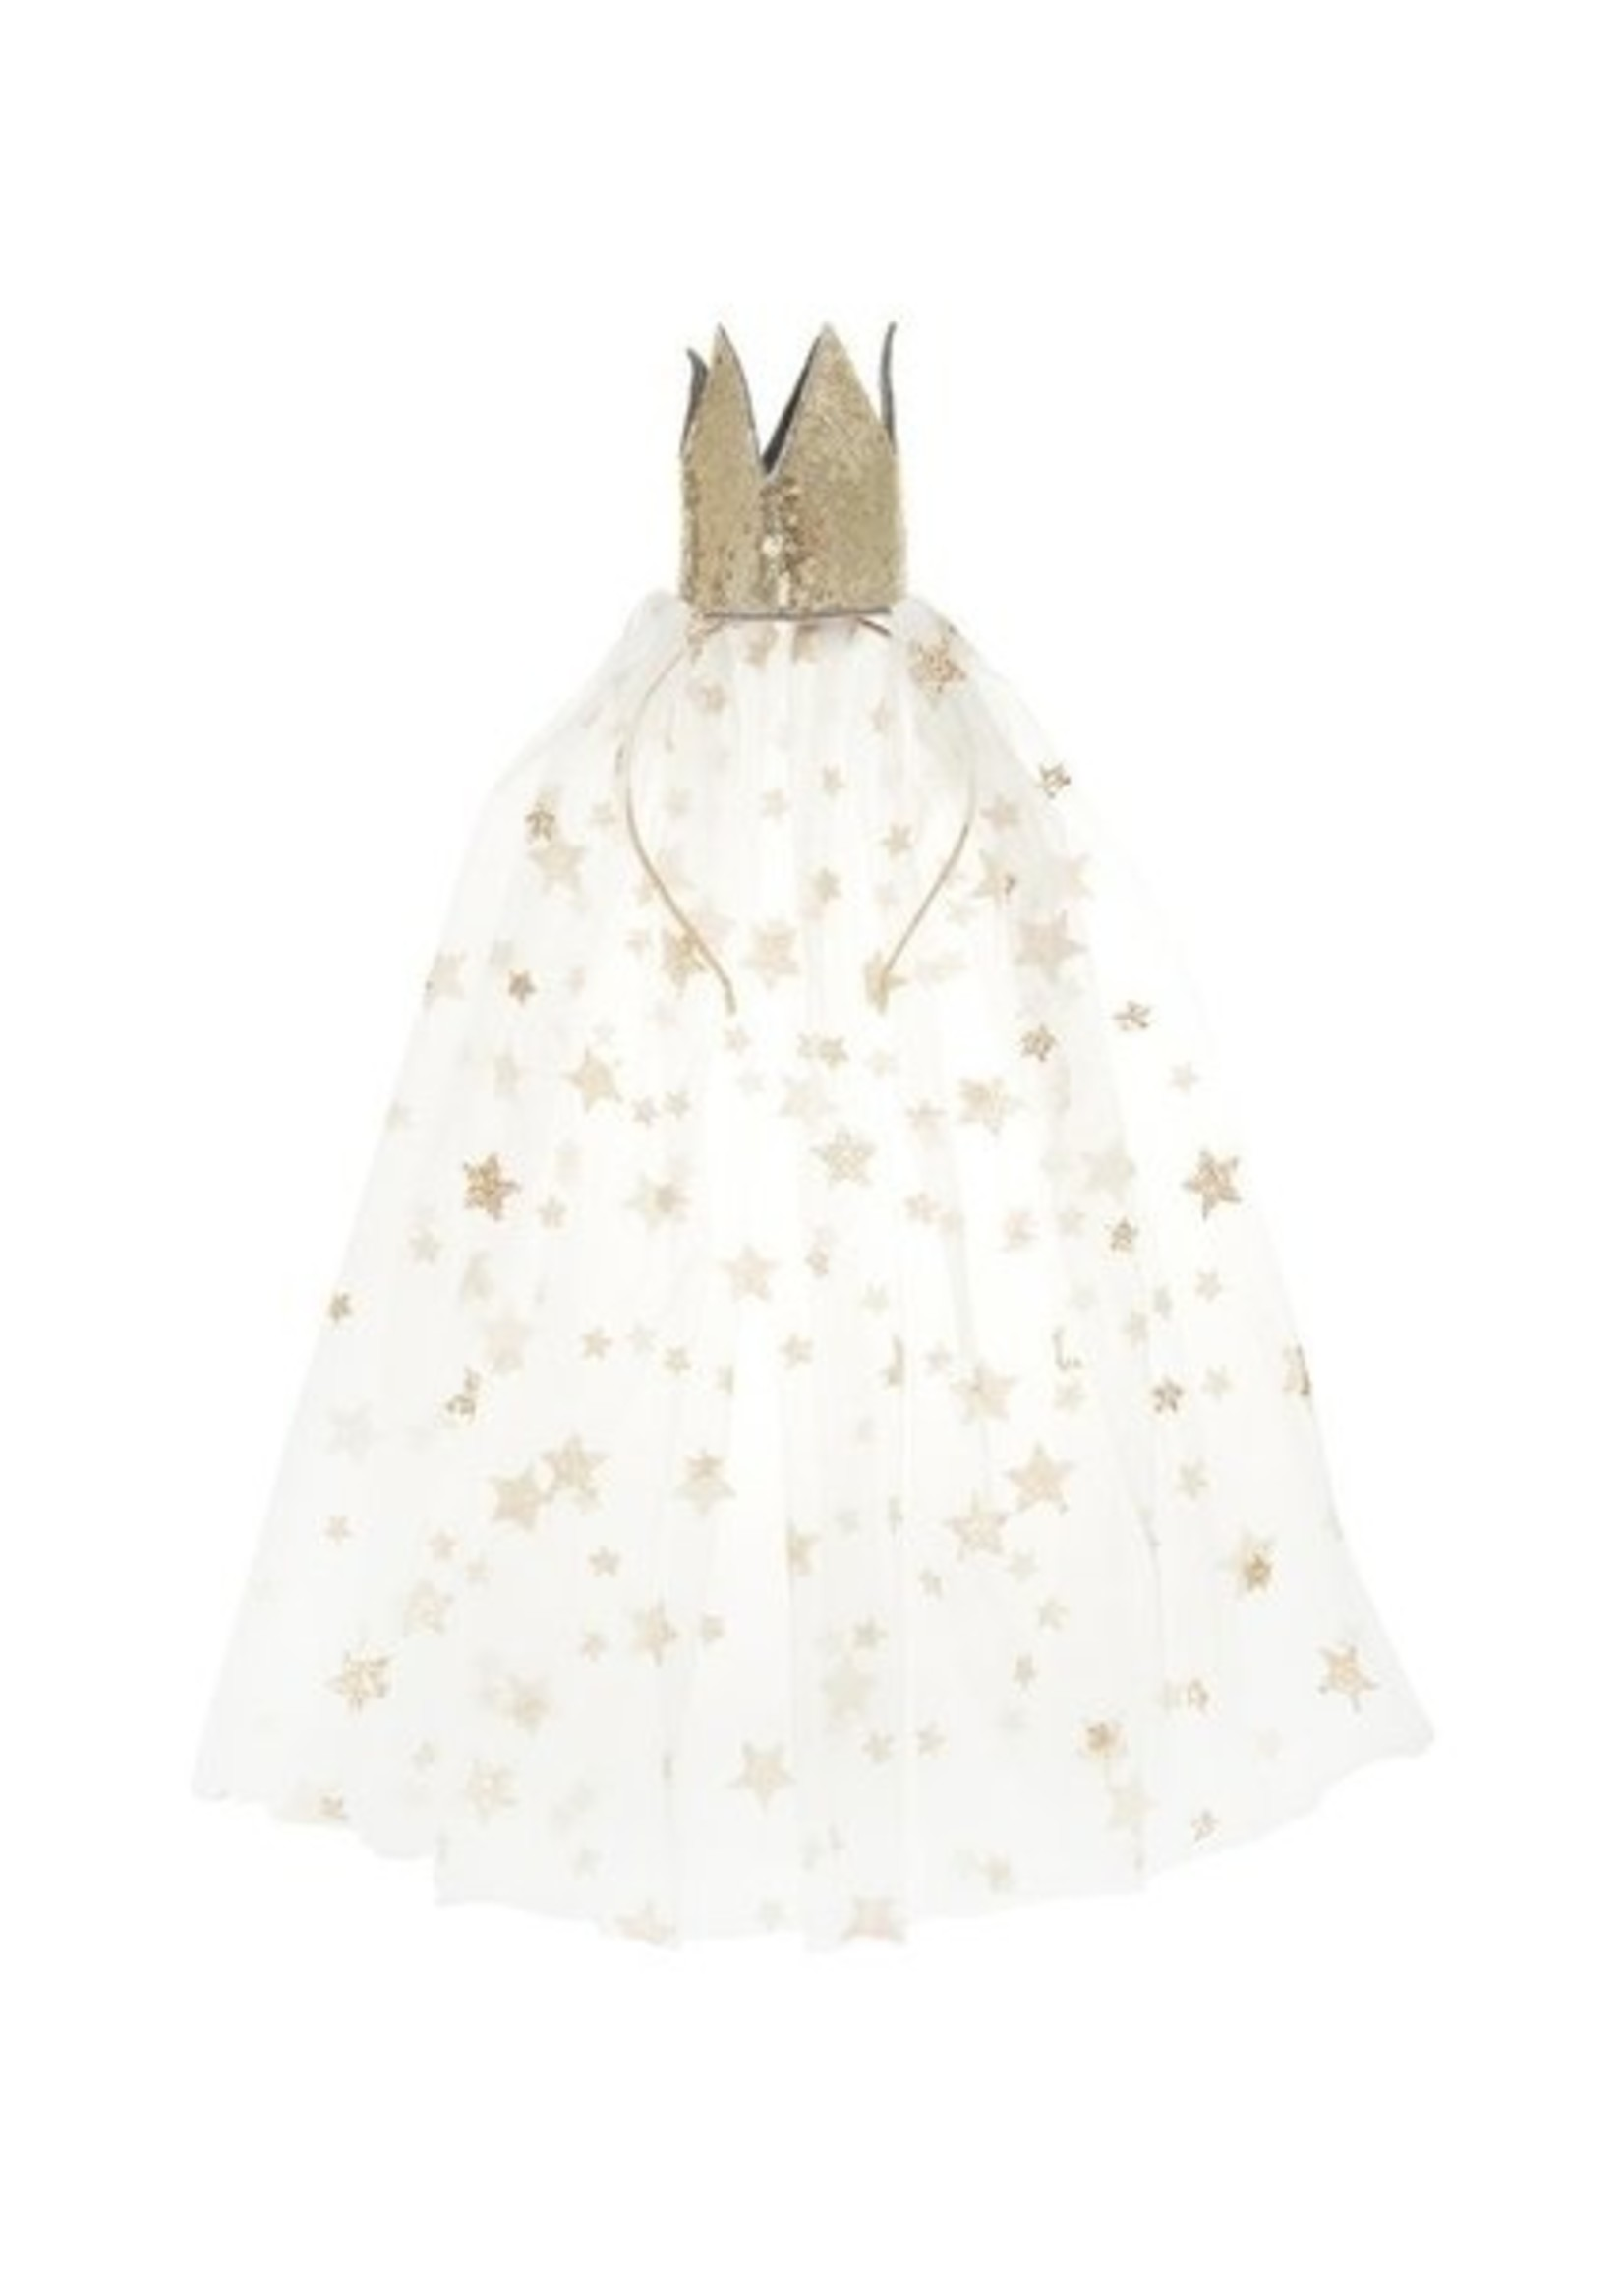 Mimi and Lula M&L - Her Royalty Majesty Crown